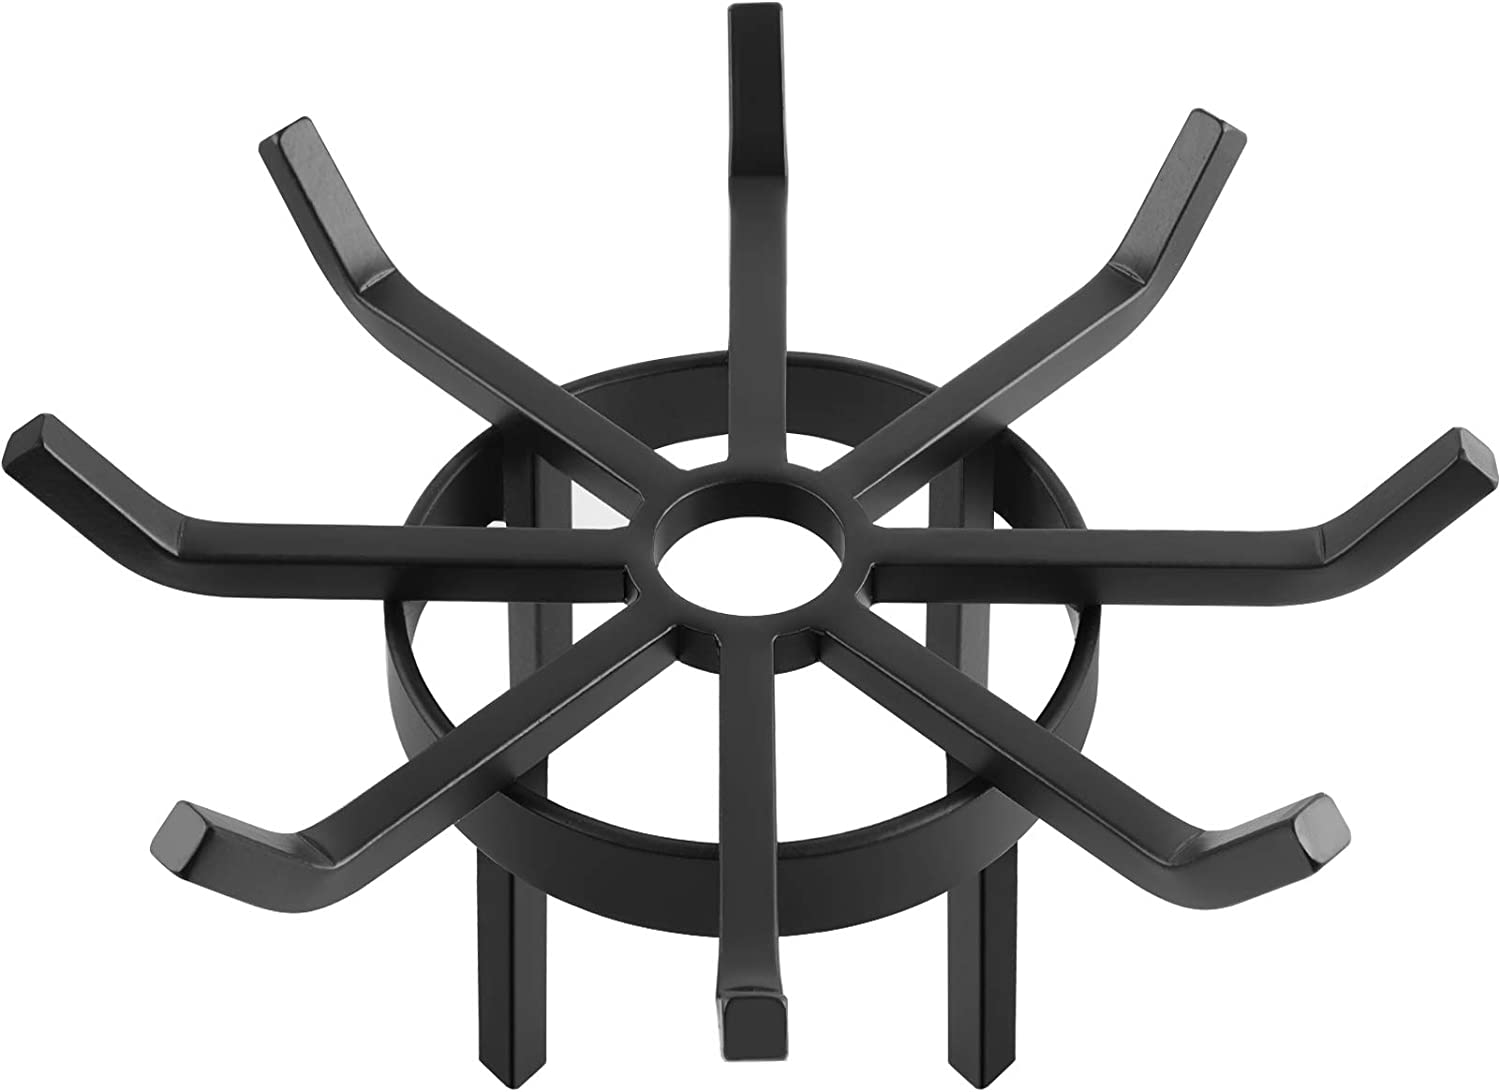 Amagabeli 20in Fire Grate Log Grate Wrought Iron Fire Pit Round Spider Wagon Wheel Firewood Grates Heavy Duty 0.7in Bar Fireplace Stove Burning Rack Holder 4Legs Black Chimney Hearth Kindling Stacking